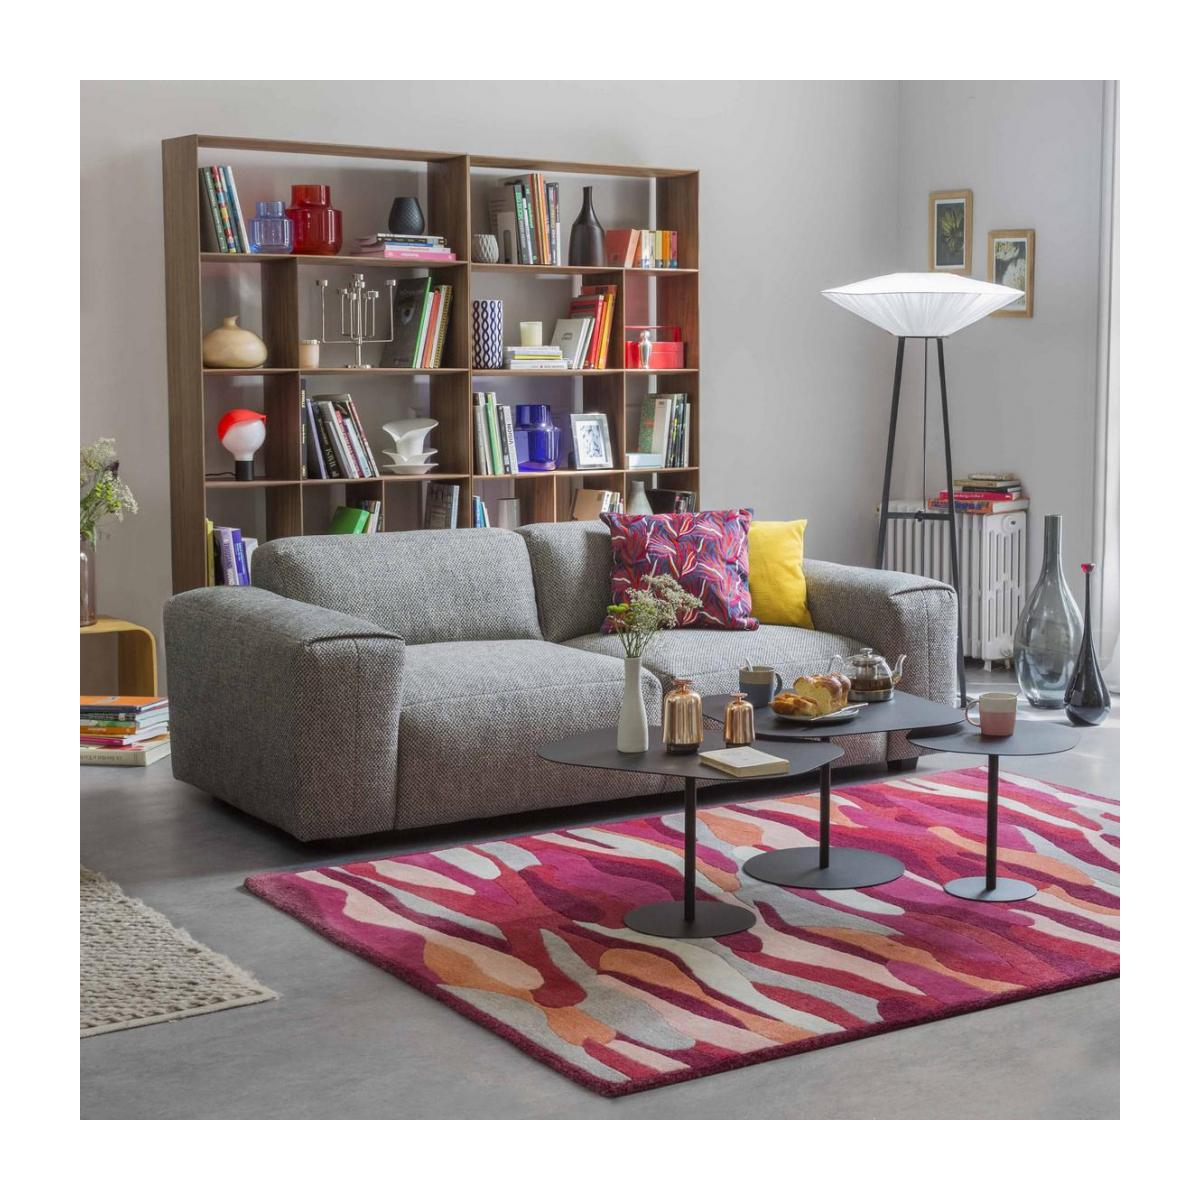 3 seater sofa with chaise longue on the left in Fasoli fabric, snow white n°2